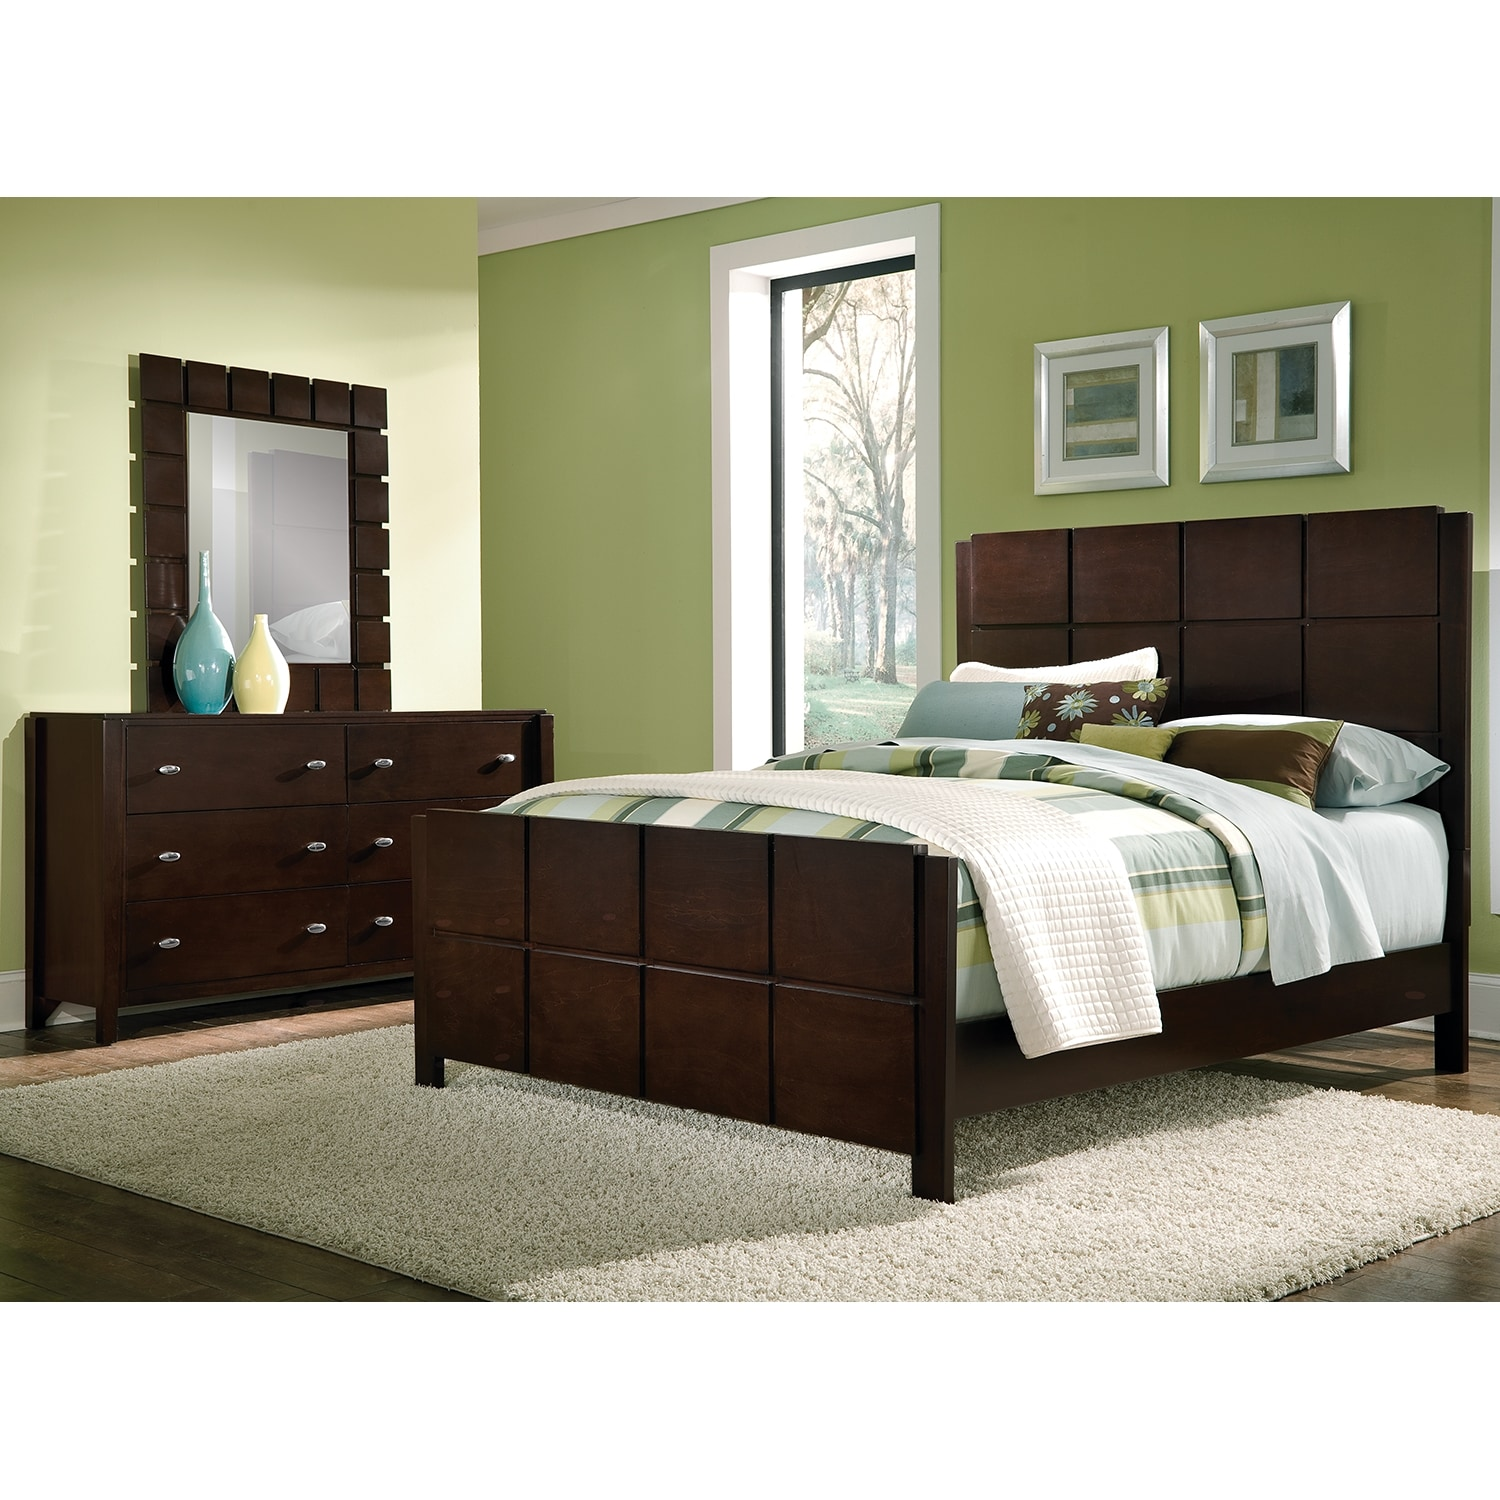 Furniture Bedroom Furniture Of Mosaic 5 Piece King Bedroom Set Dark Brown American